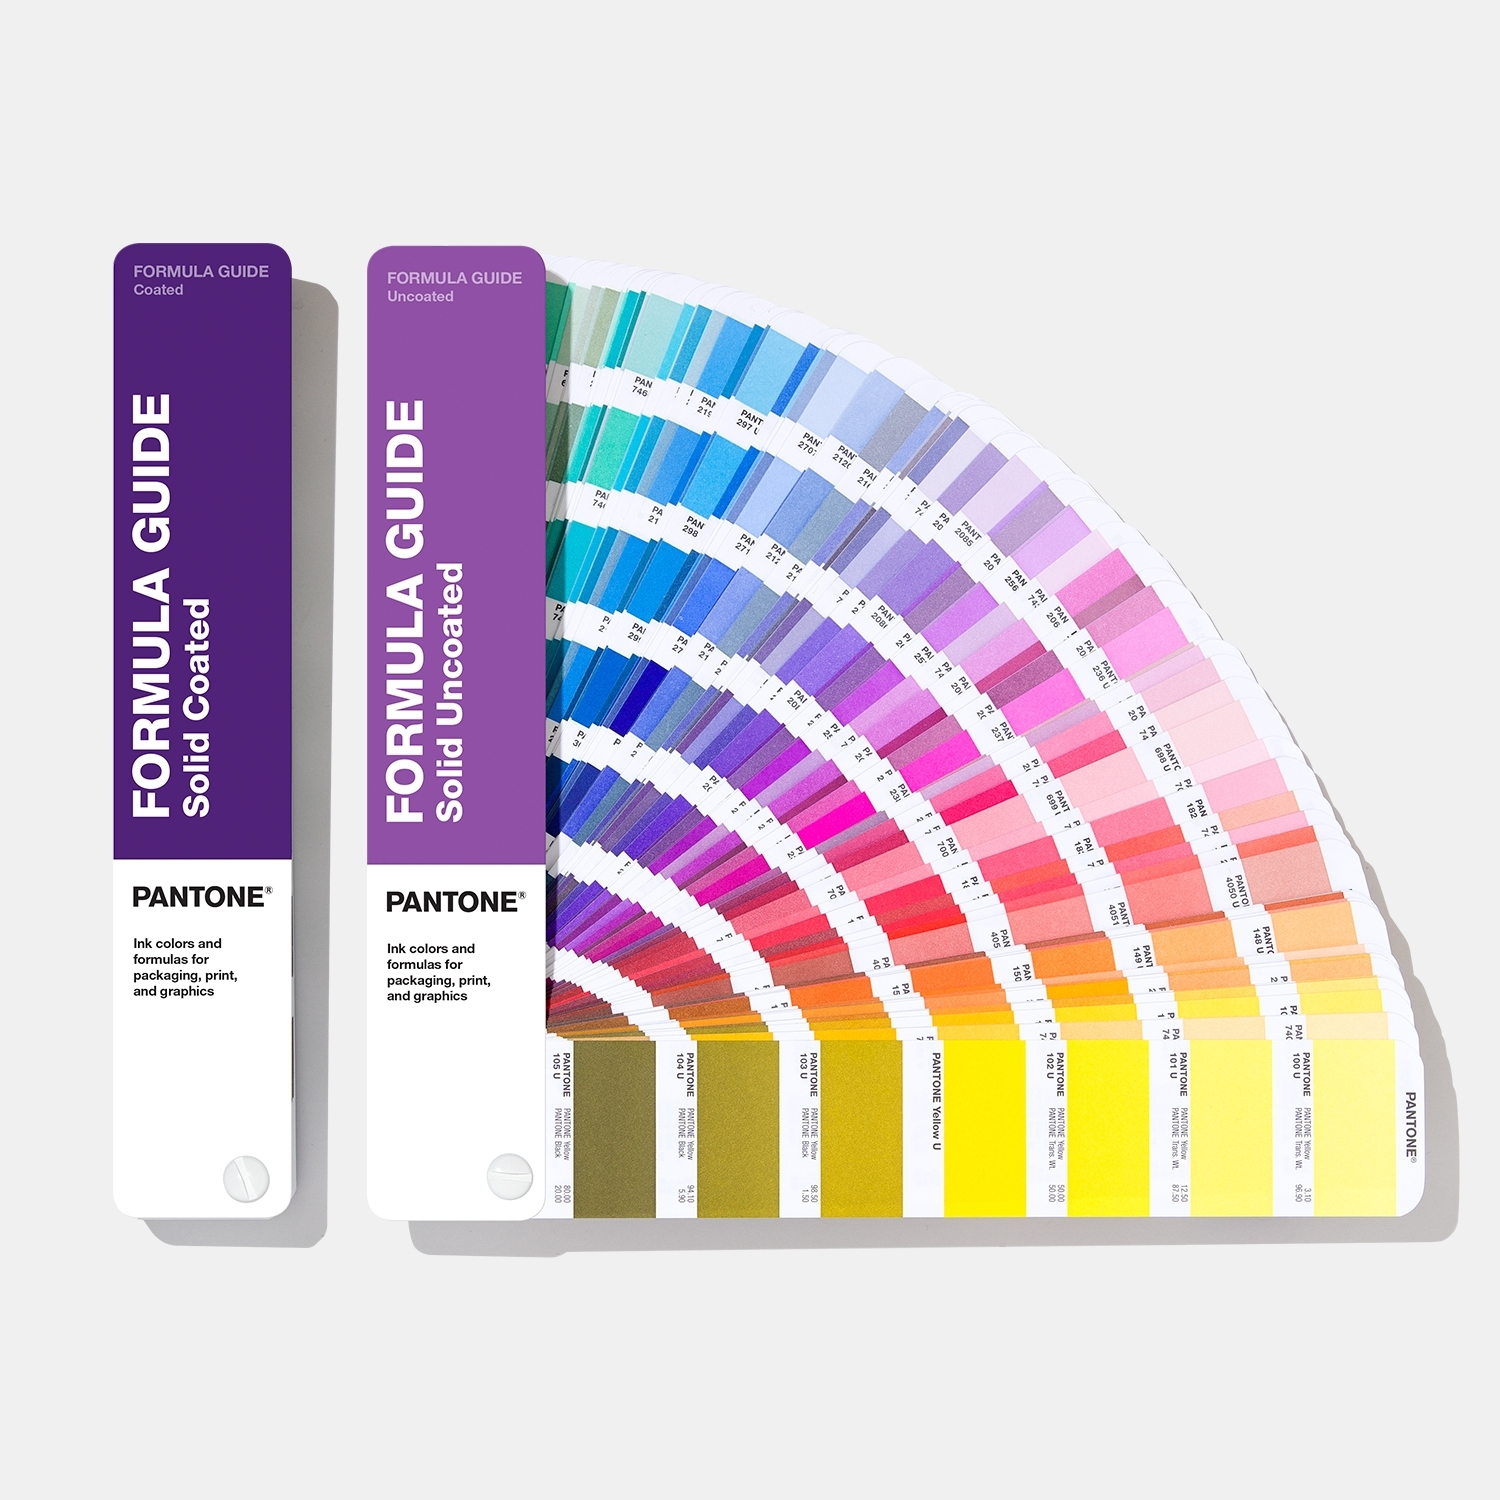 Pantone Formula Guide Supplement | Coated & Uncoated Update your essential color guide with new colors - View 2